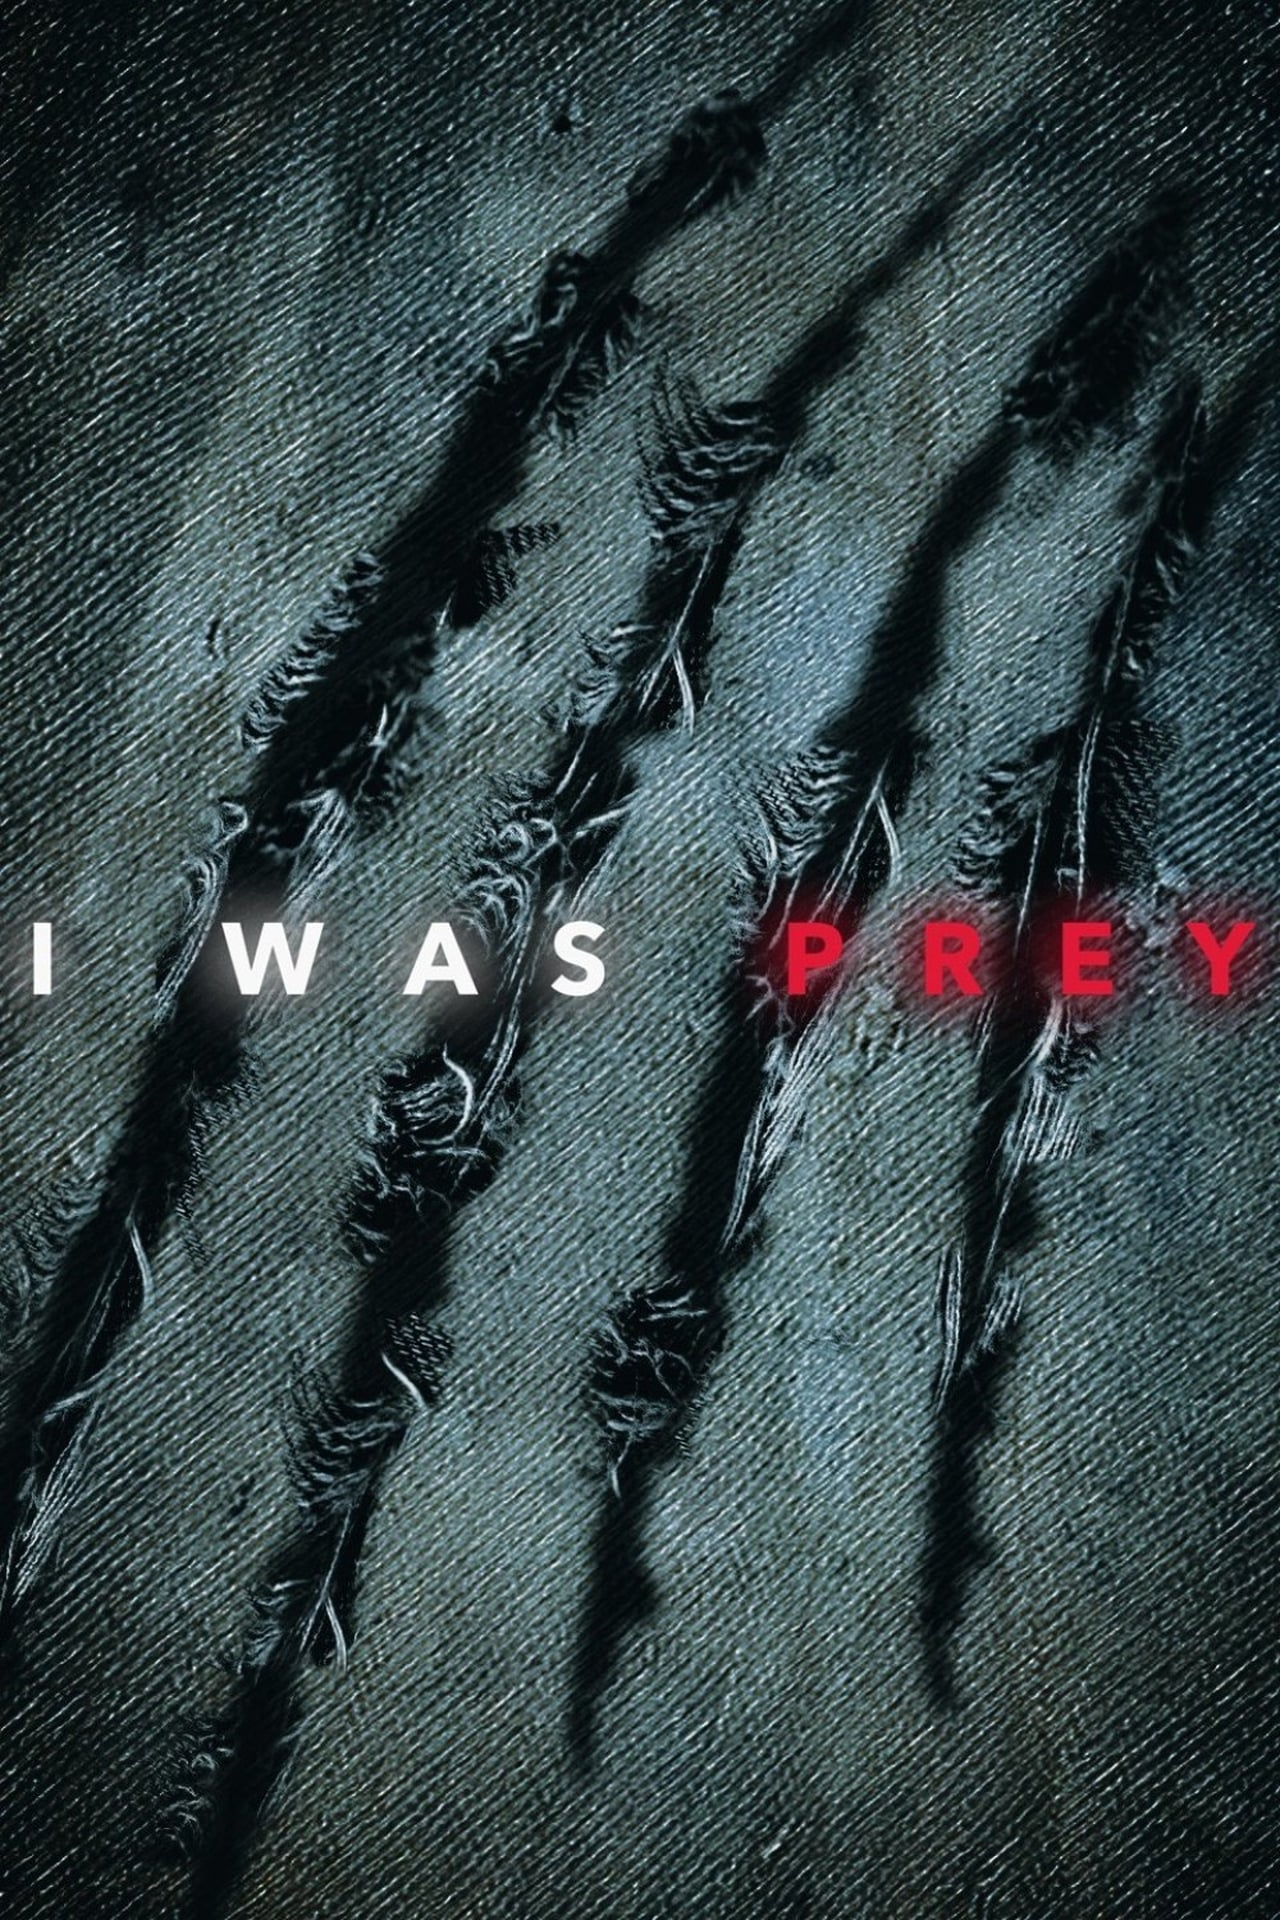 Putlocker I Was Prey Season 1 (2017)